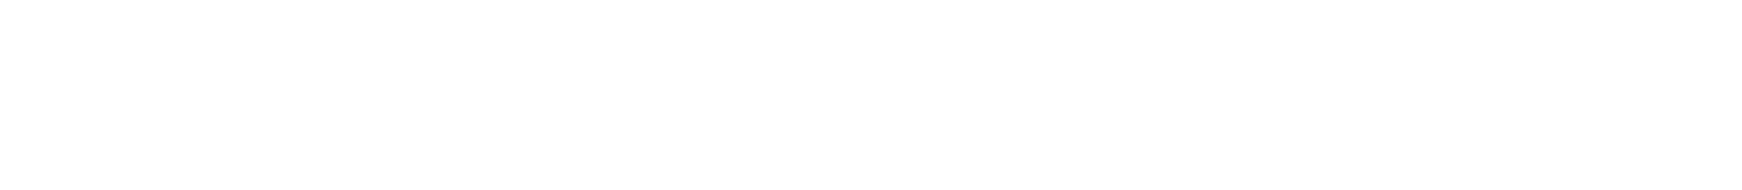 Condé Nast Traveler #1 Destination Spa Resort in North America 2019 and #2 Destination Spa Resort in the World 2019